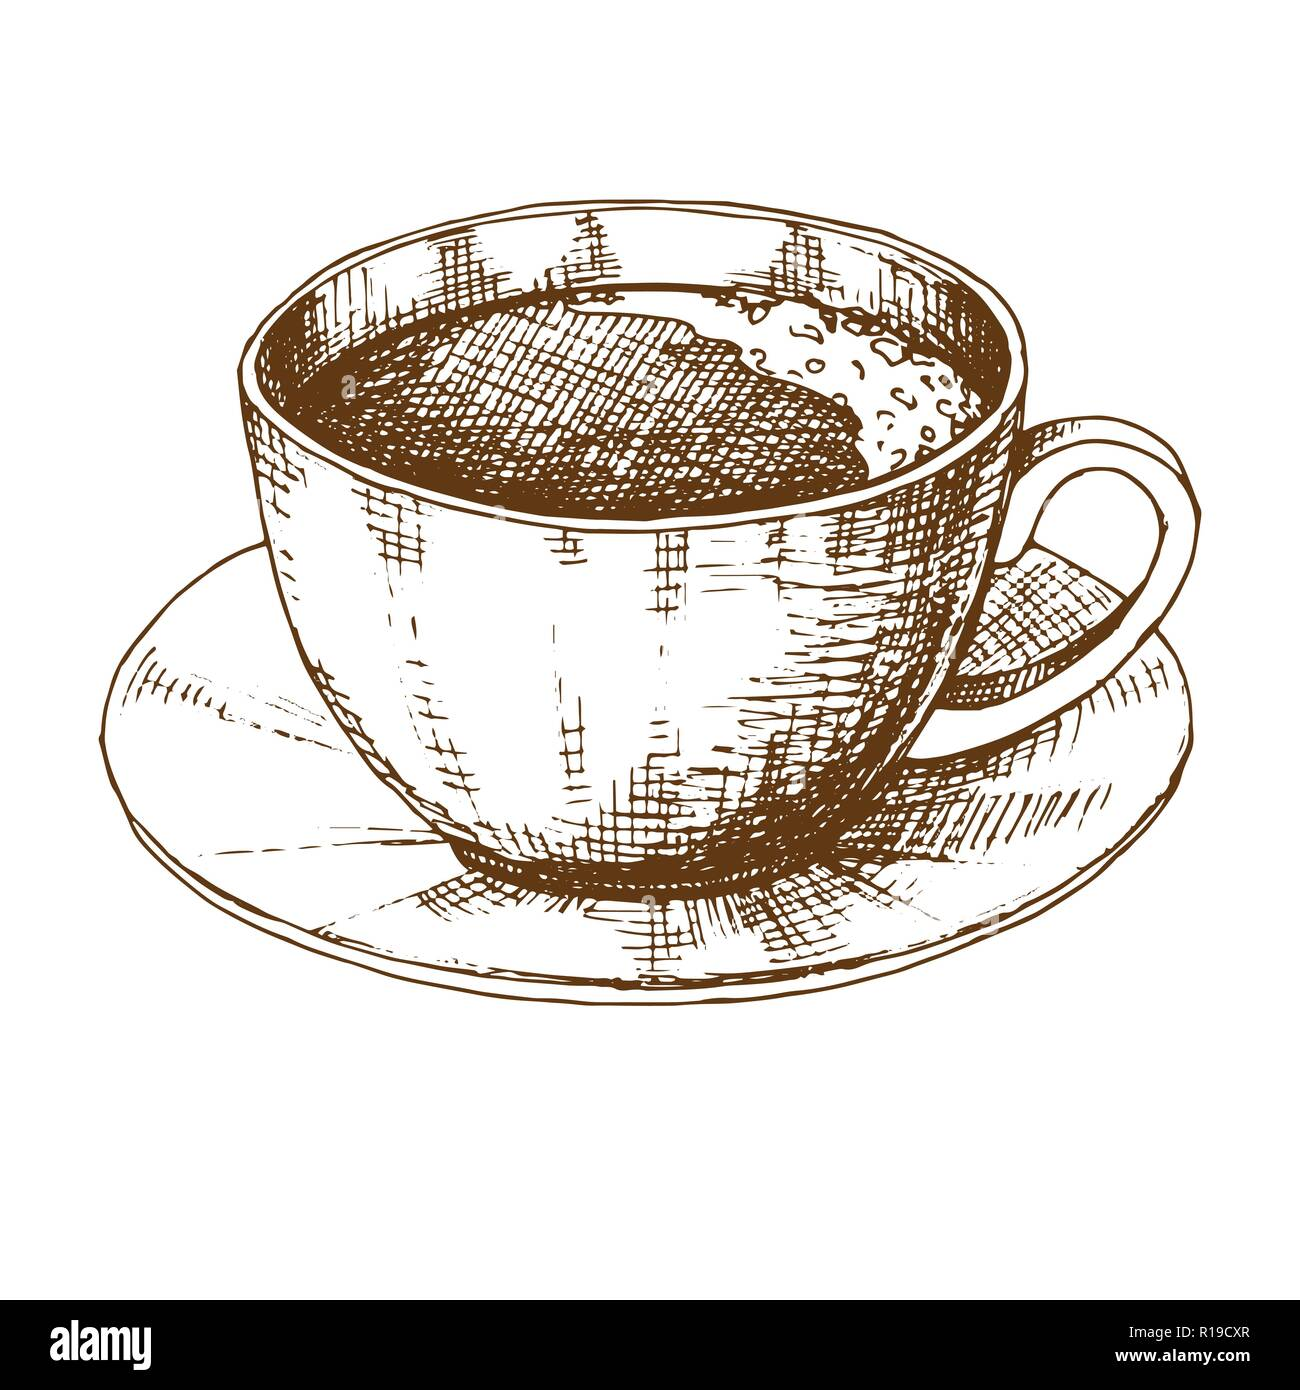 Sketch Of A Cup Of Coffee On A Saucer Vector Illustration Of A Sketch Style Stock Vector Image Art Alamy